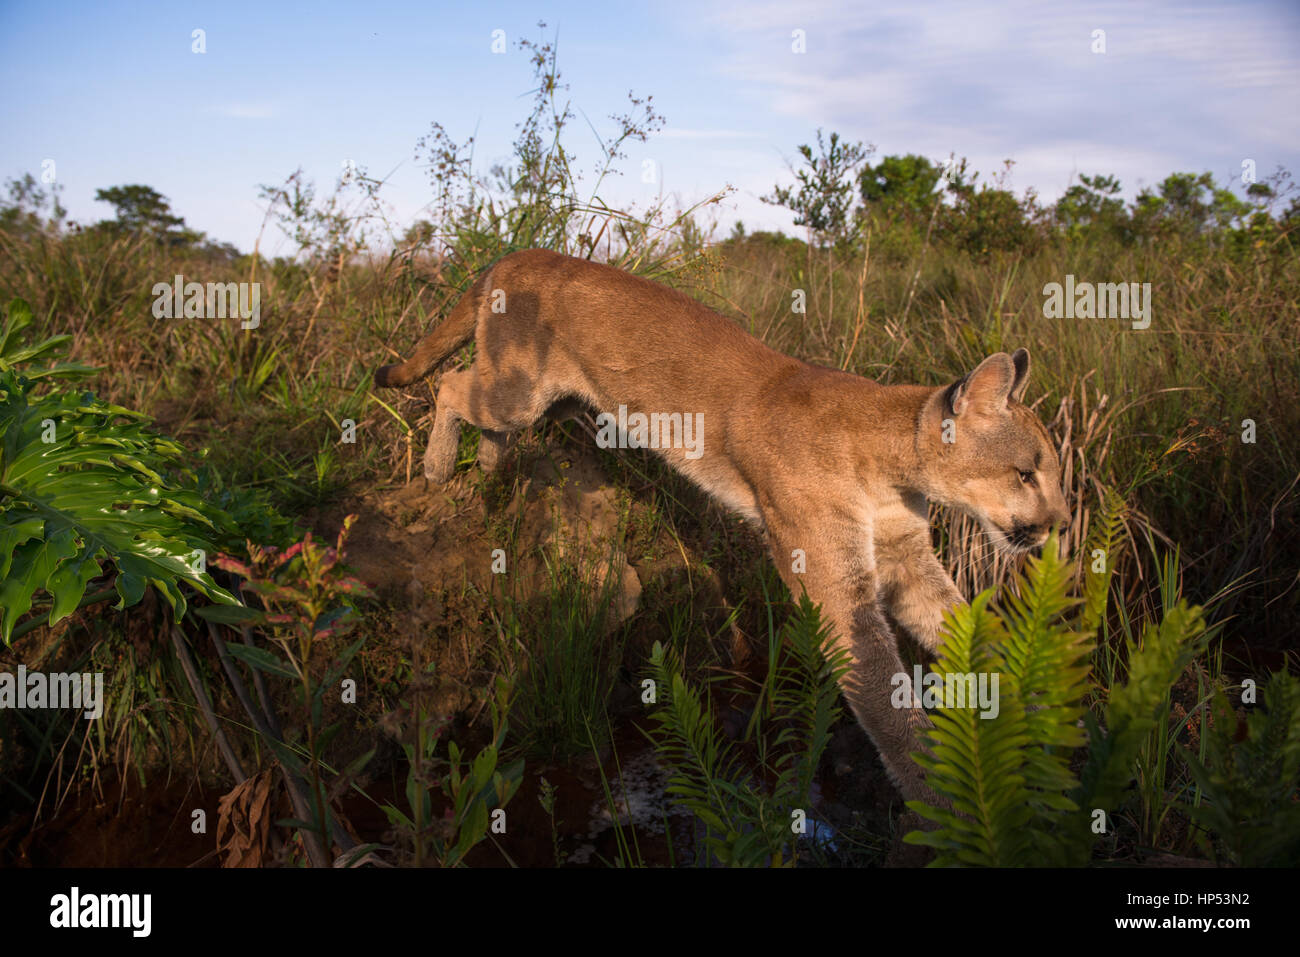 A large Puma cub from Central Brazil jumping over a small creek Stock Photo